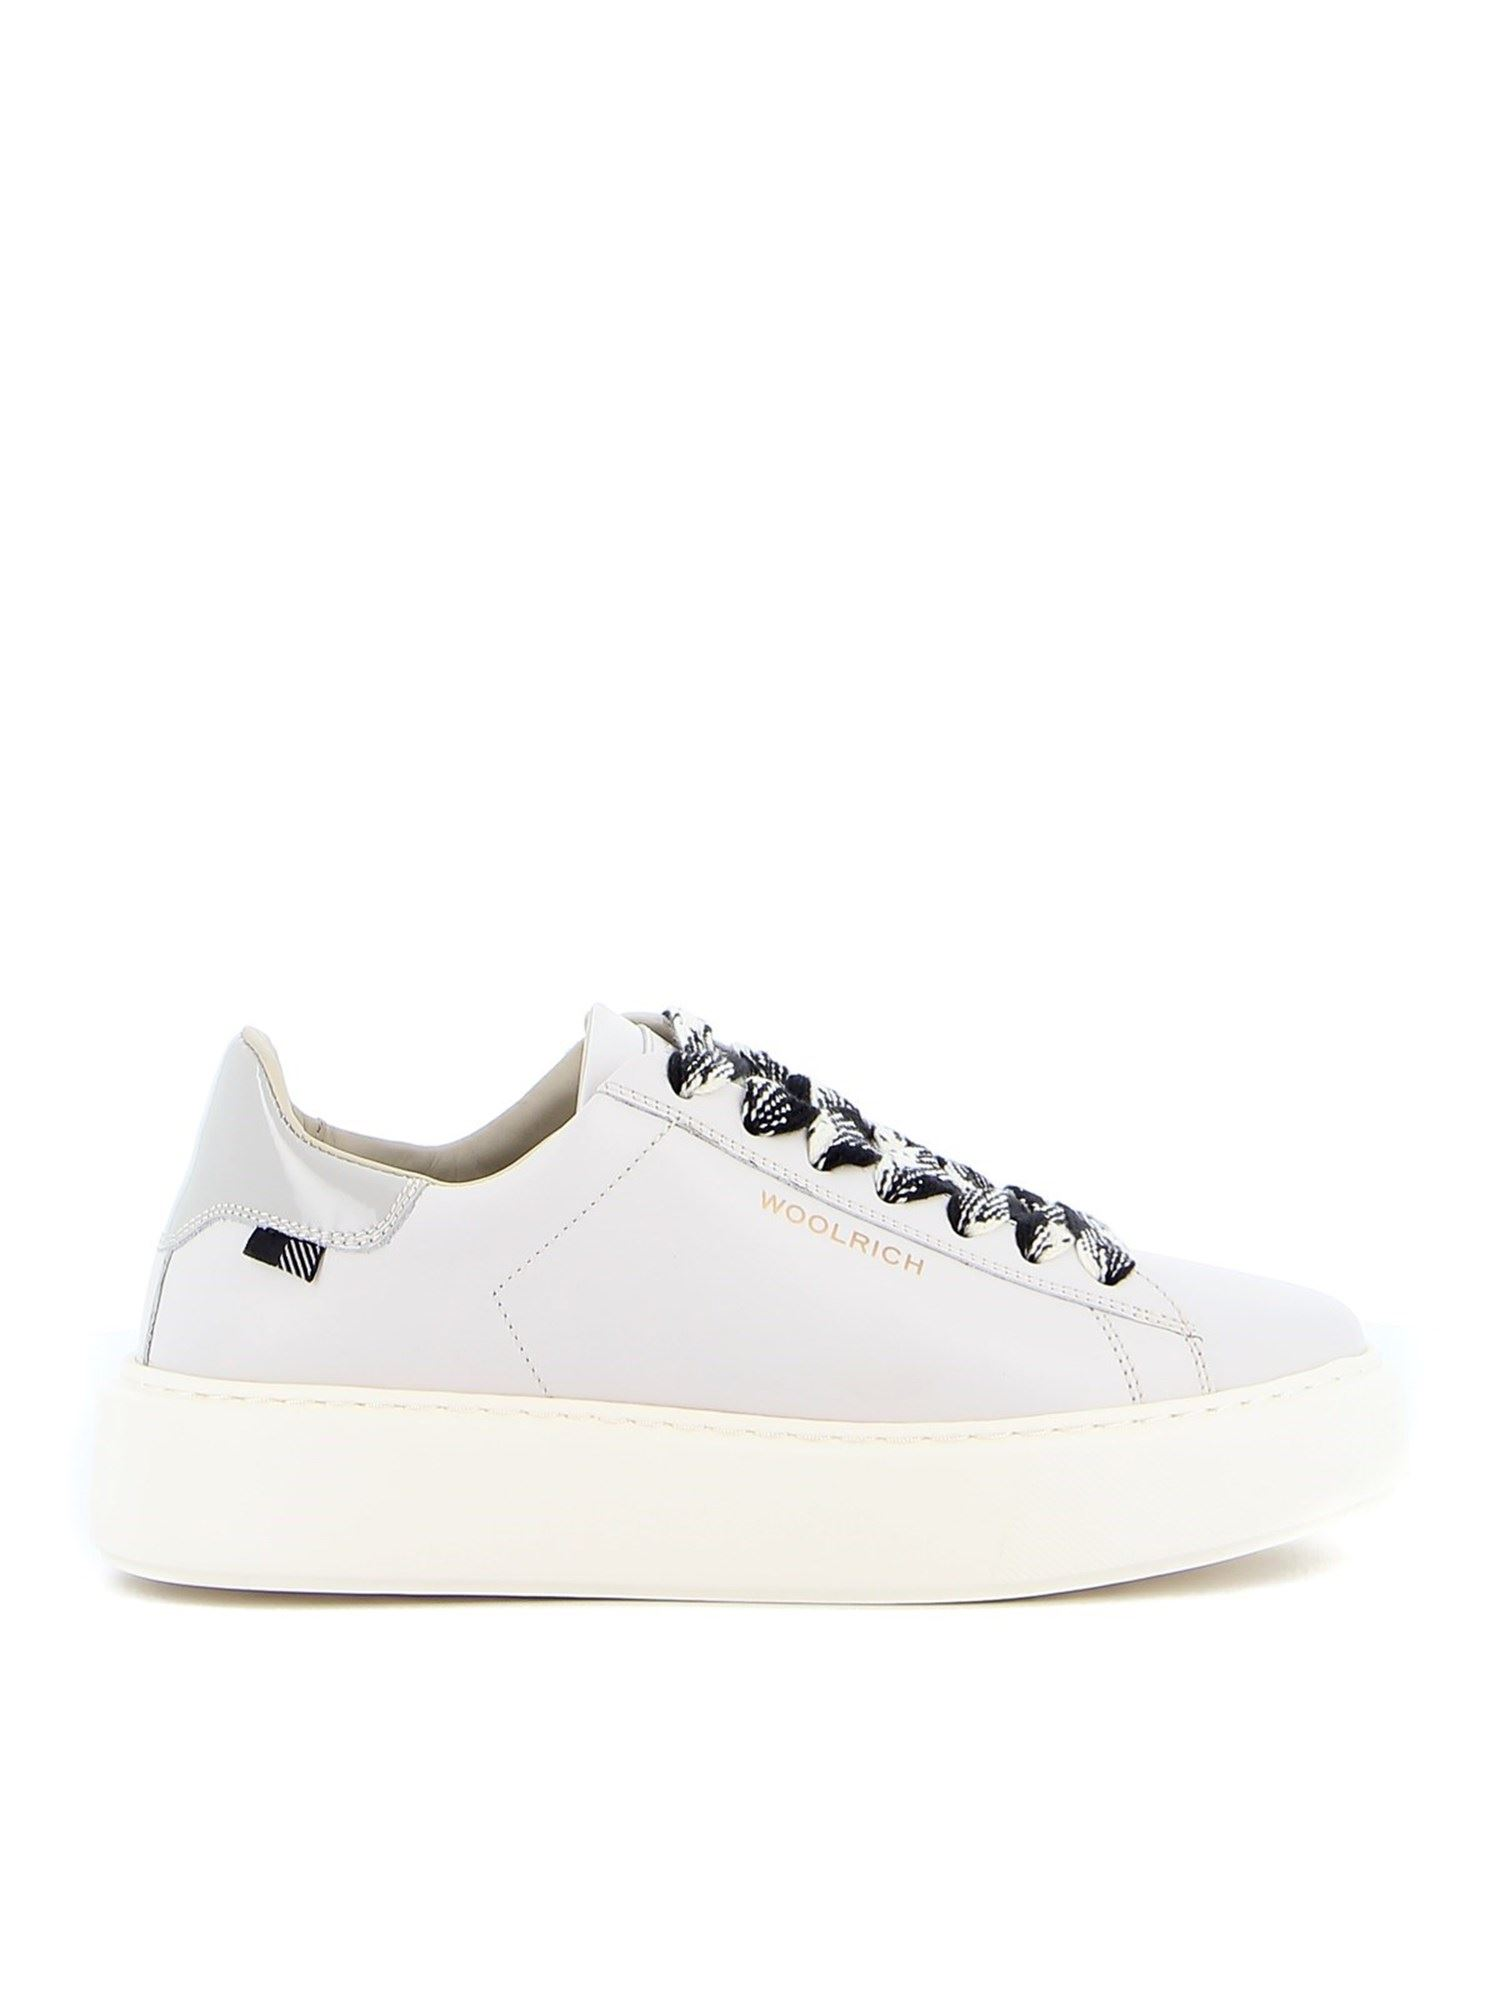 Woolrich Leathers LEATHER SNEAKERS IN WHITE